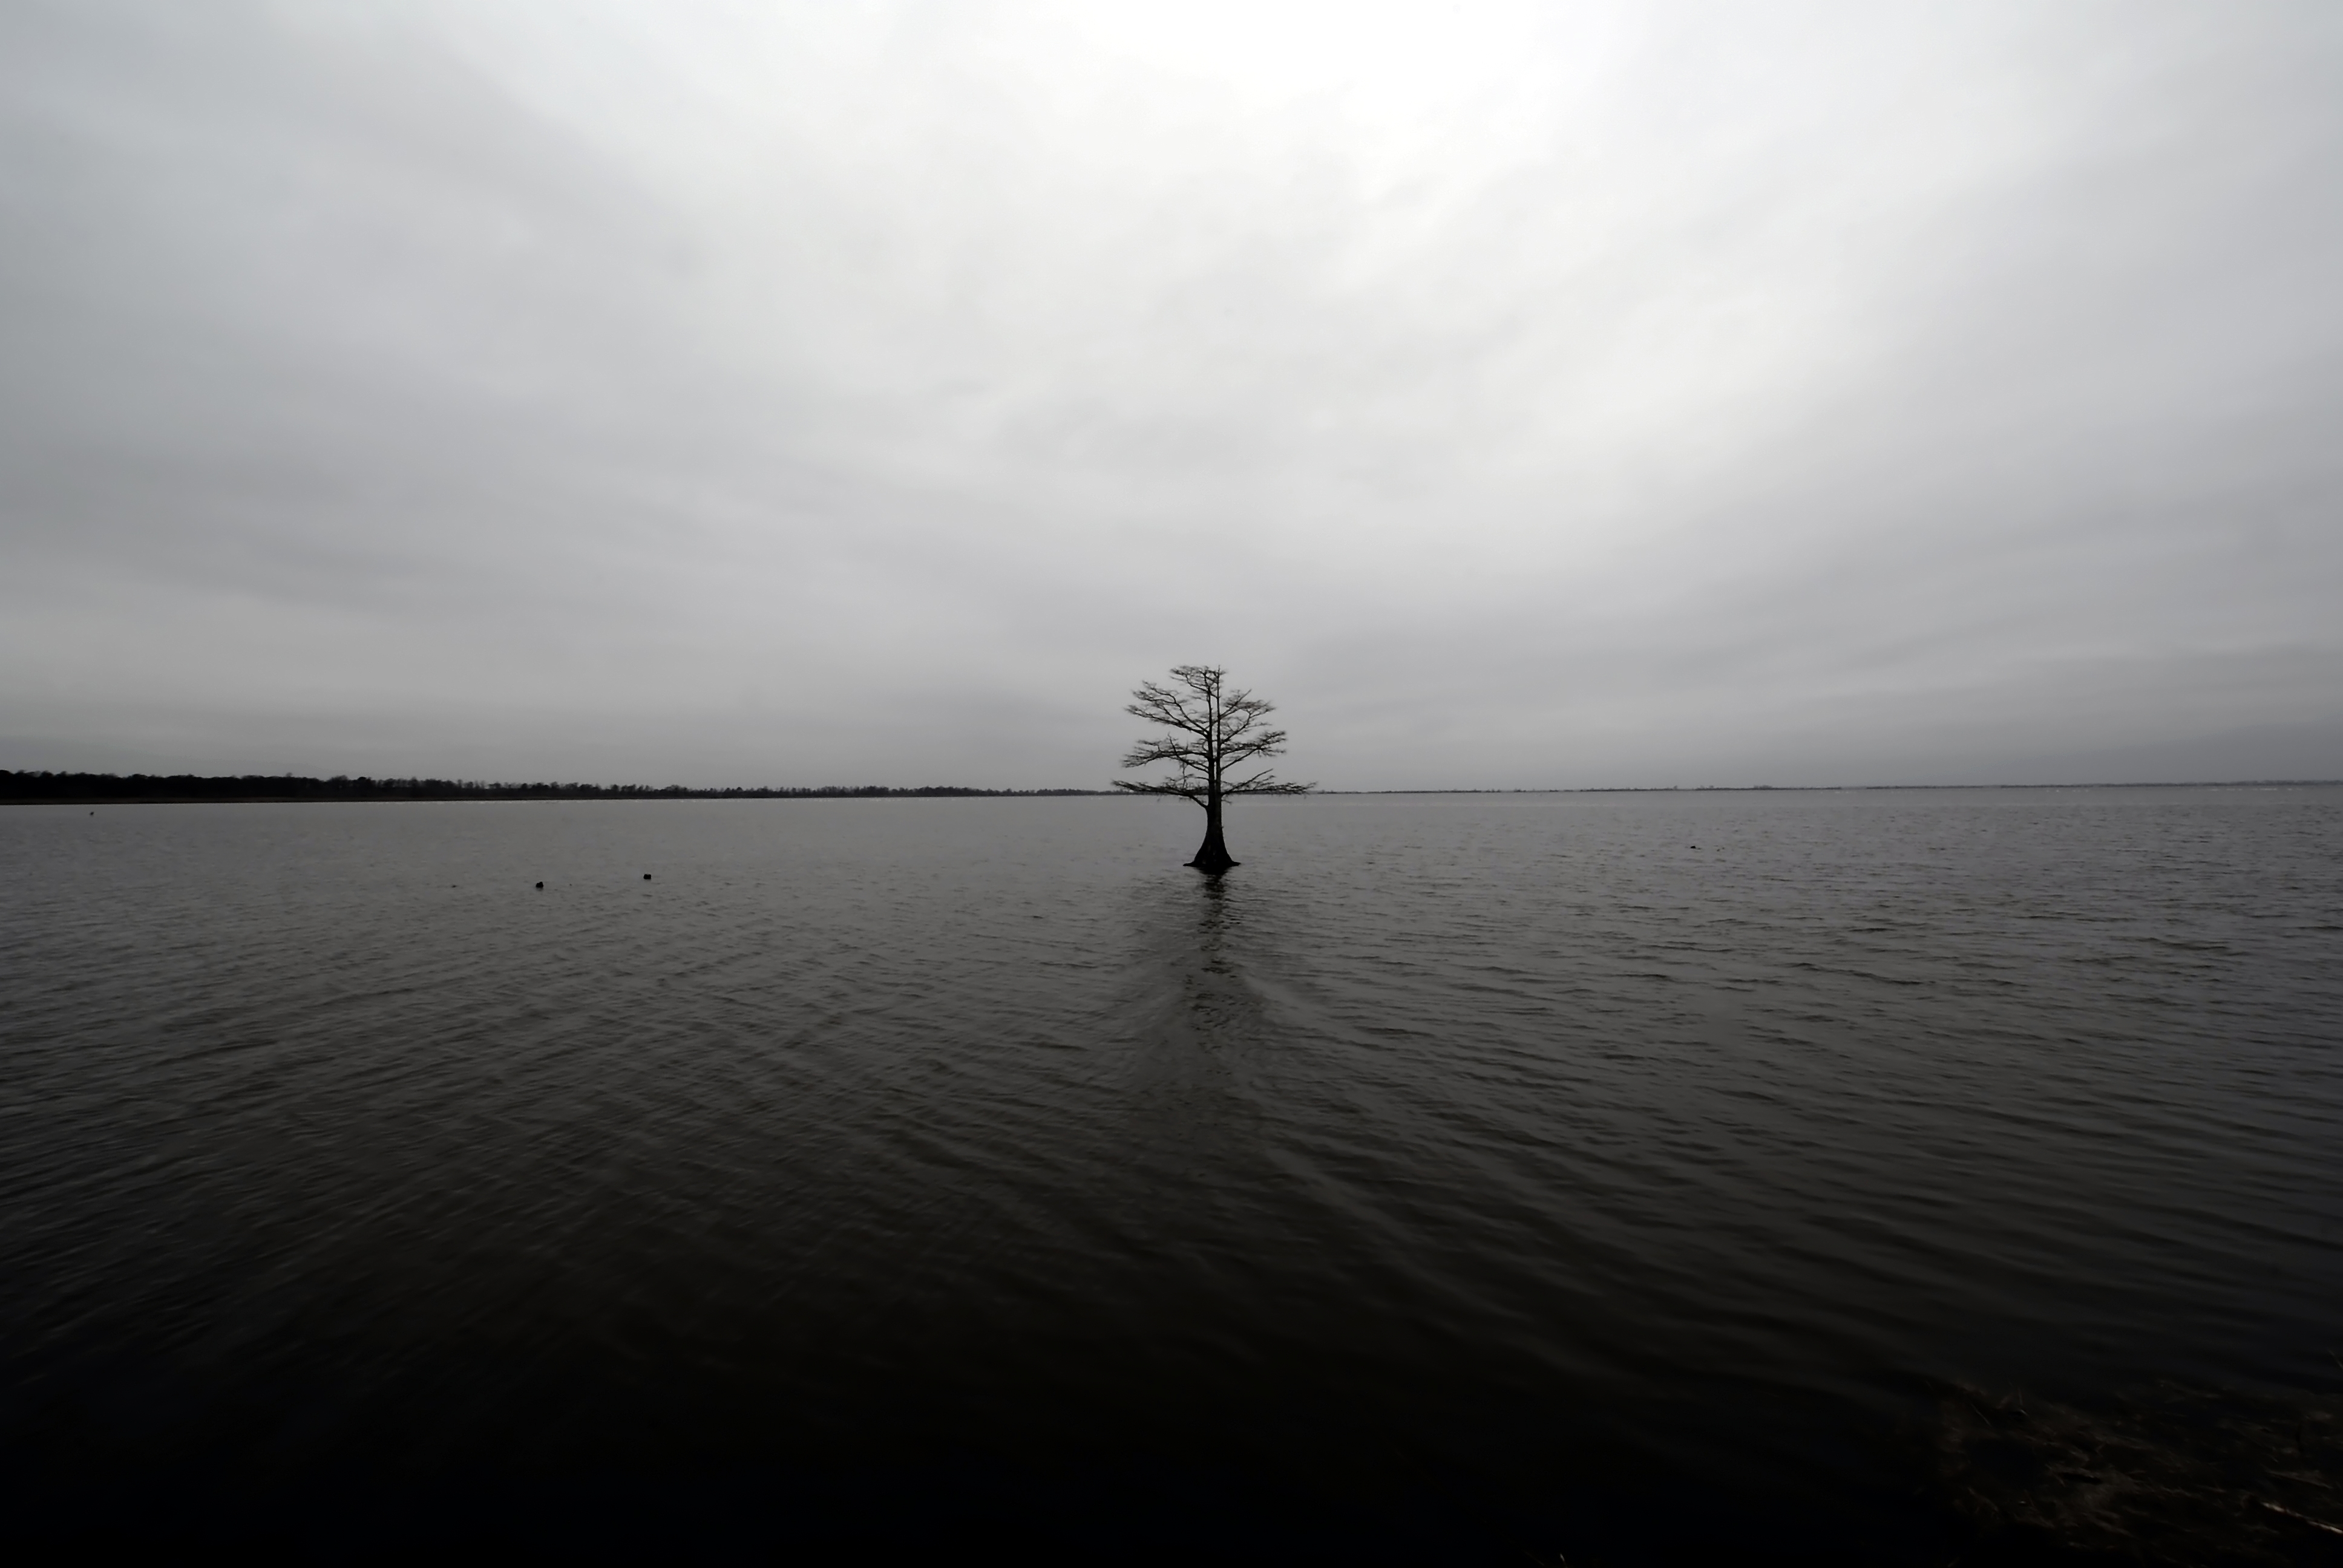 Lonely tree on a lake photo